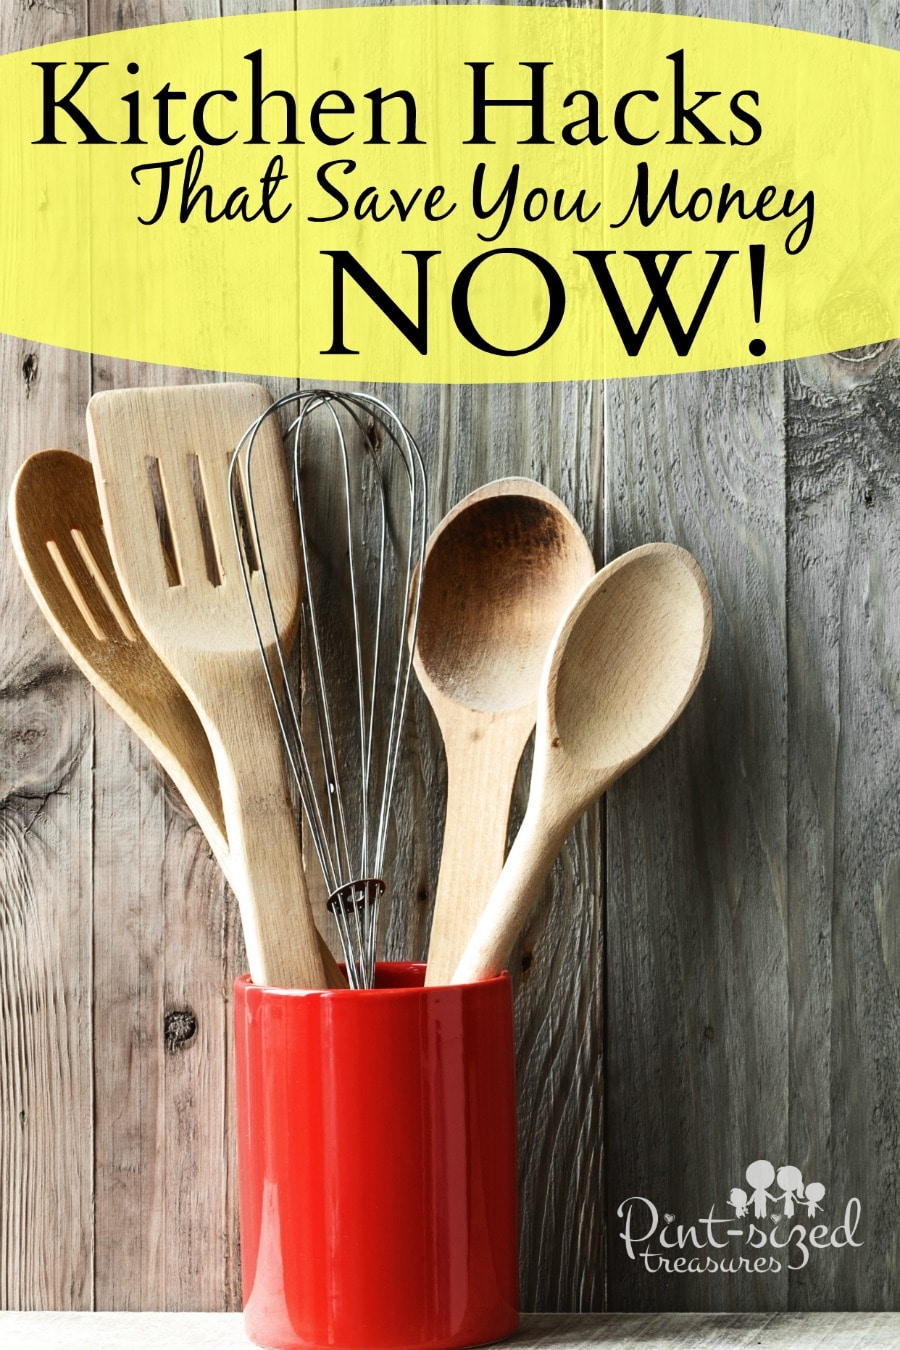 Wow! These kitchen hacks are genius -- and help save a TON of money in the kitchen!